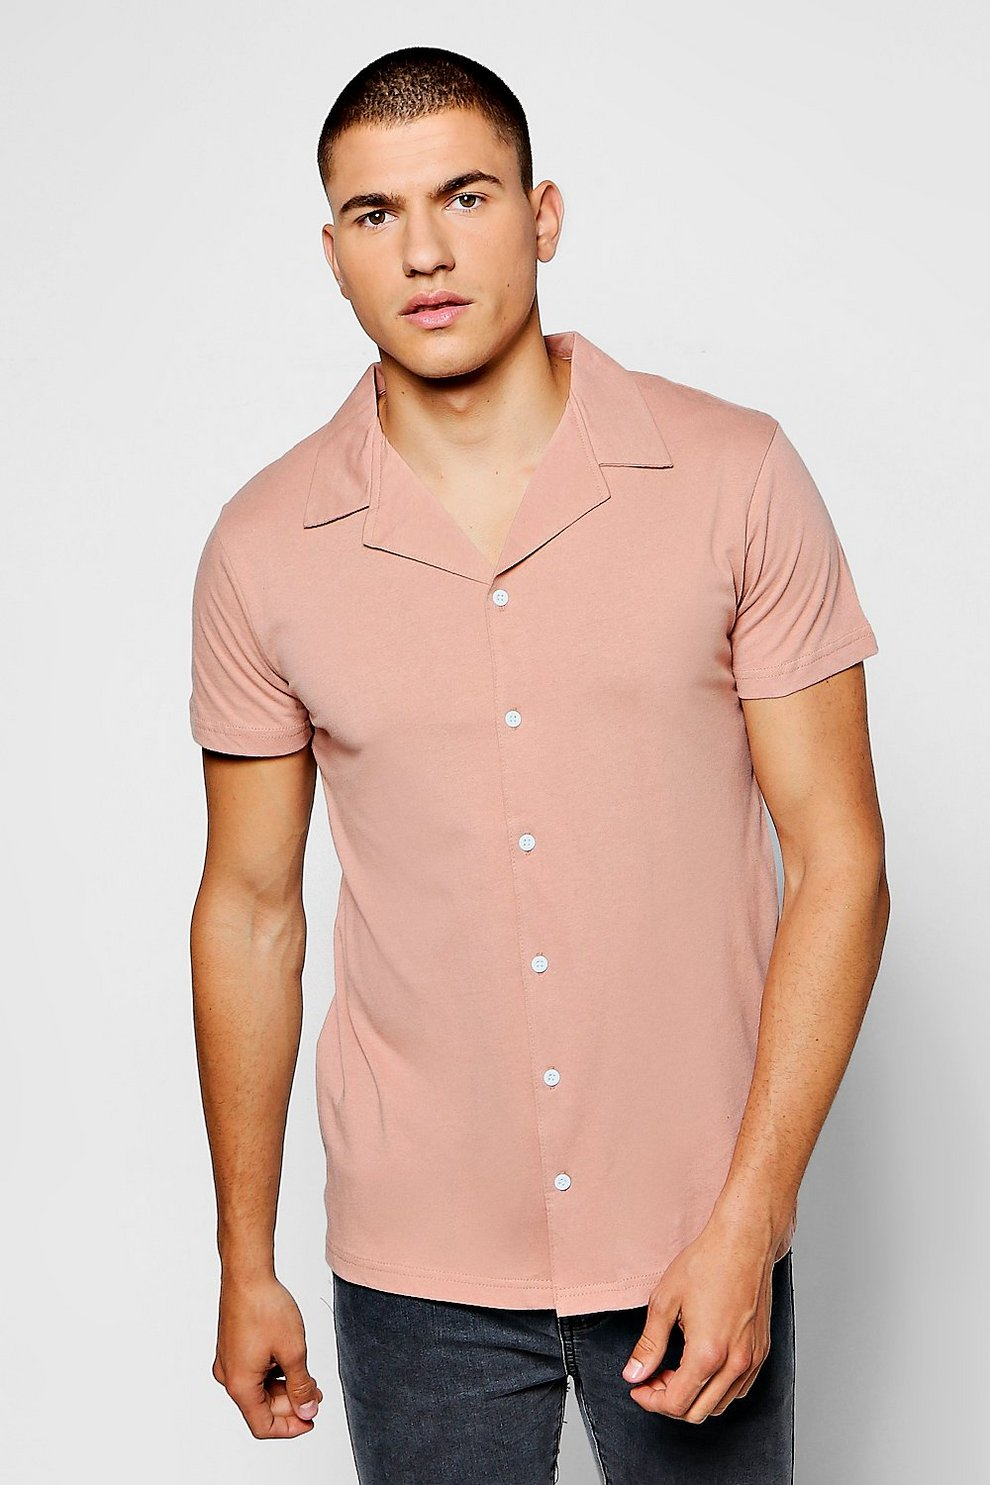 bd889e669f2313 Short Sleeve Revere Collar Jersey Shirt. Hover to zoom